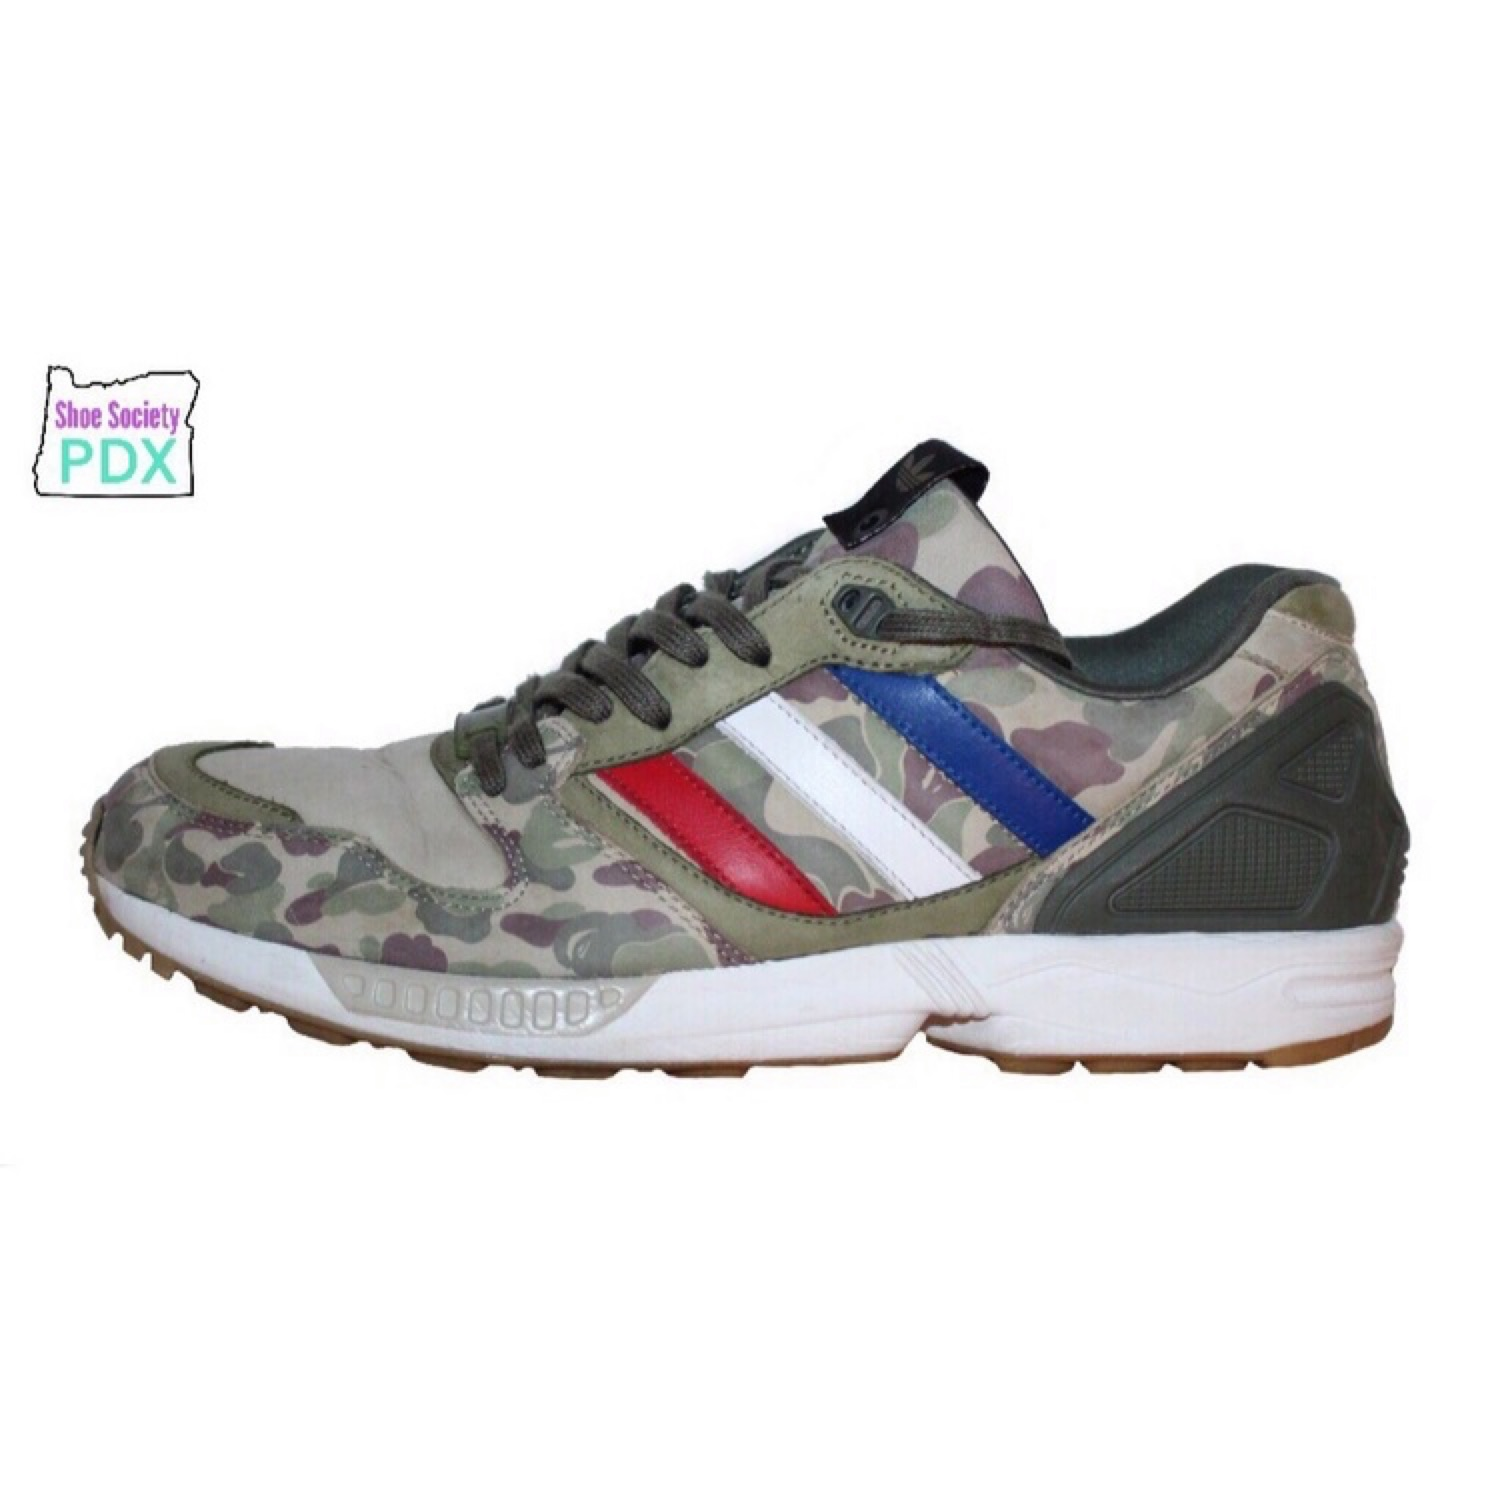 lowest price 214a8 f9d1f Bape X Undefeated X Adidas Zx 5000 Boost Camo